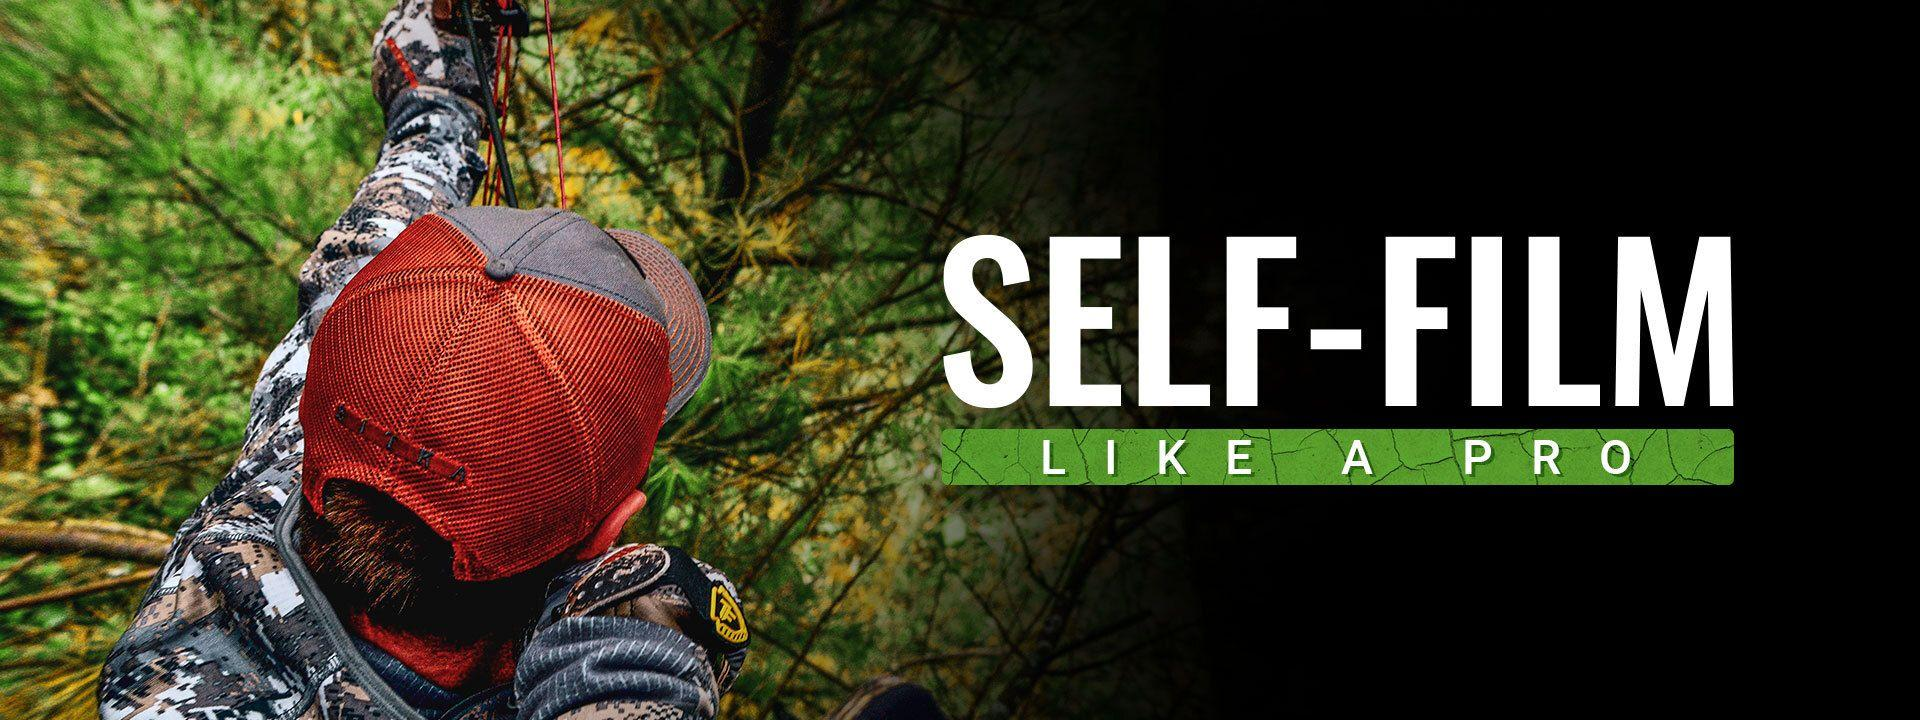 Tips For Self-Filming From Your Tree Stand